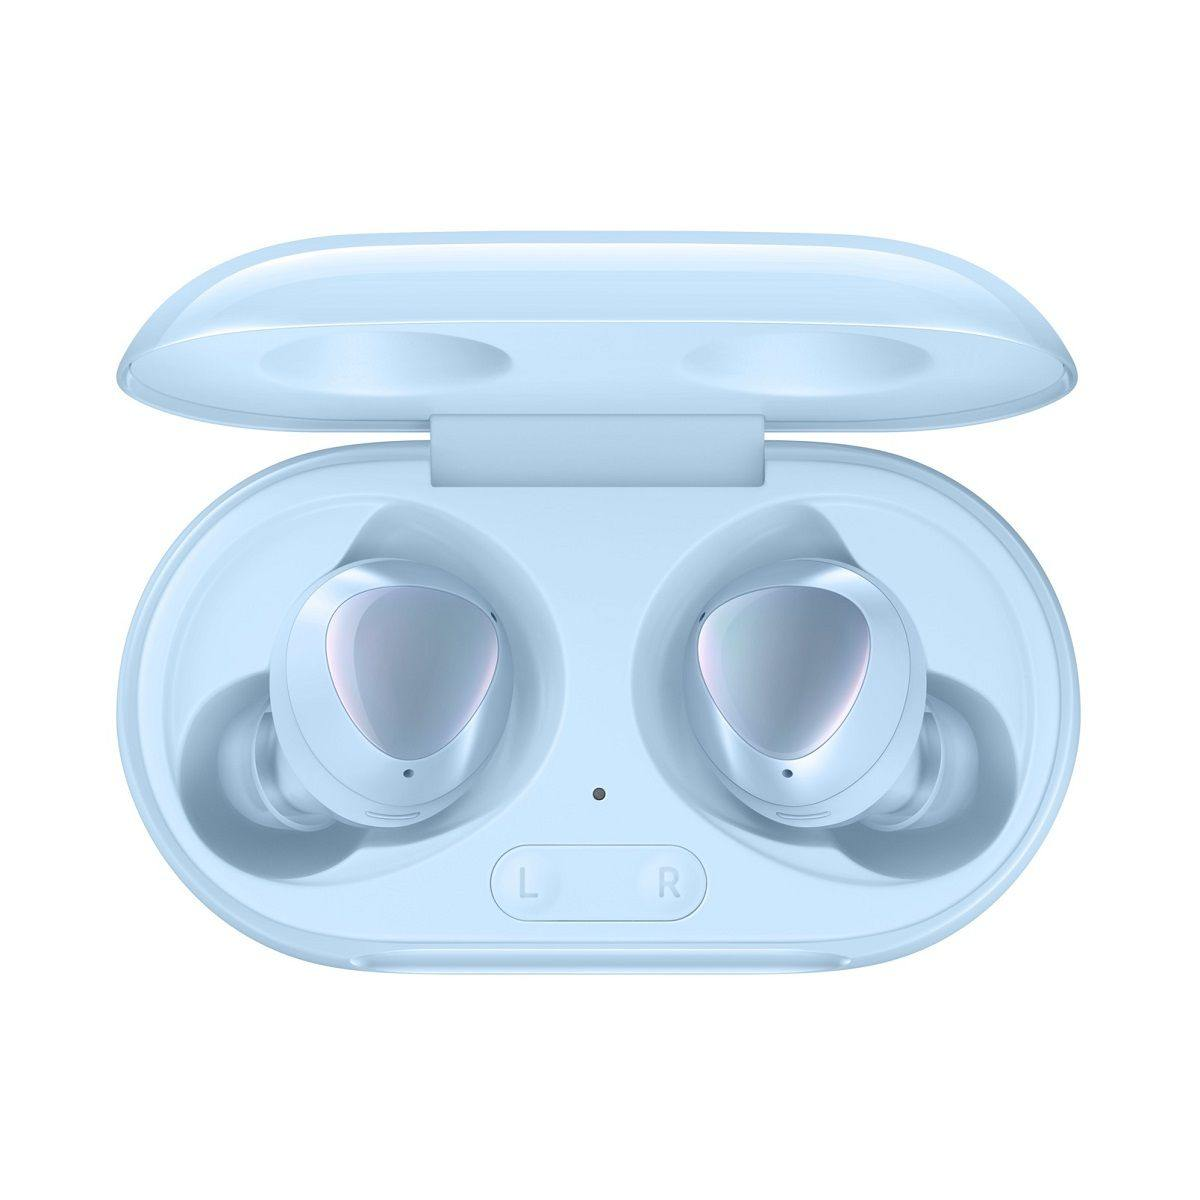 Official Samsung Galaxy Buds Plus Bluetooth Wireless Earphones with Charging Case Blue